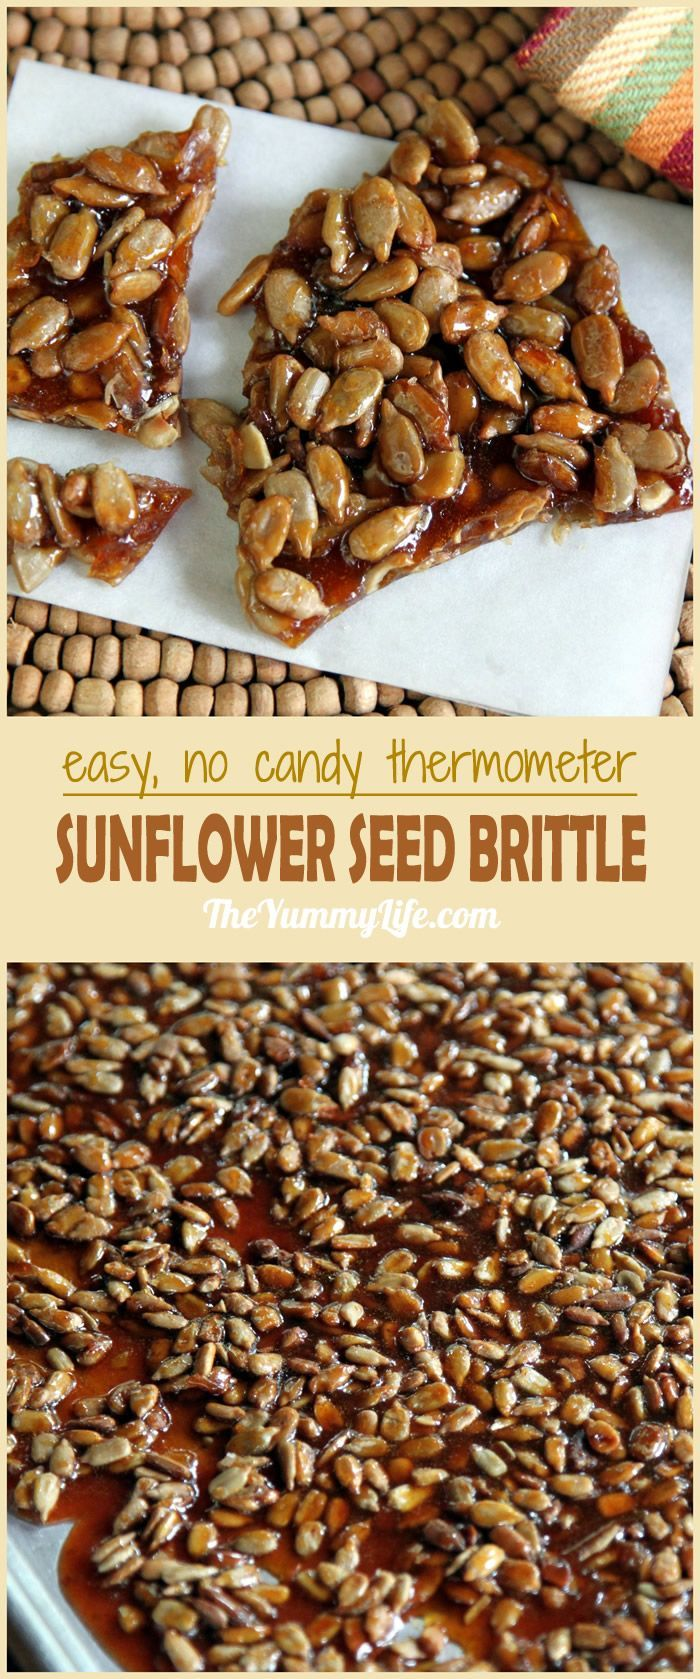 This is an easy method that doesn't require a candy thermometer. The result is a delicious, toasted, nutty brittle. A great Fall party or shower favor, school or office treat. From The Yummy Life.